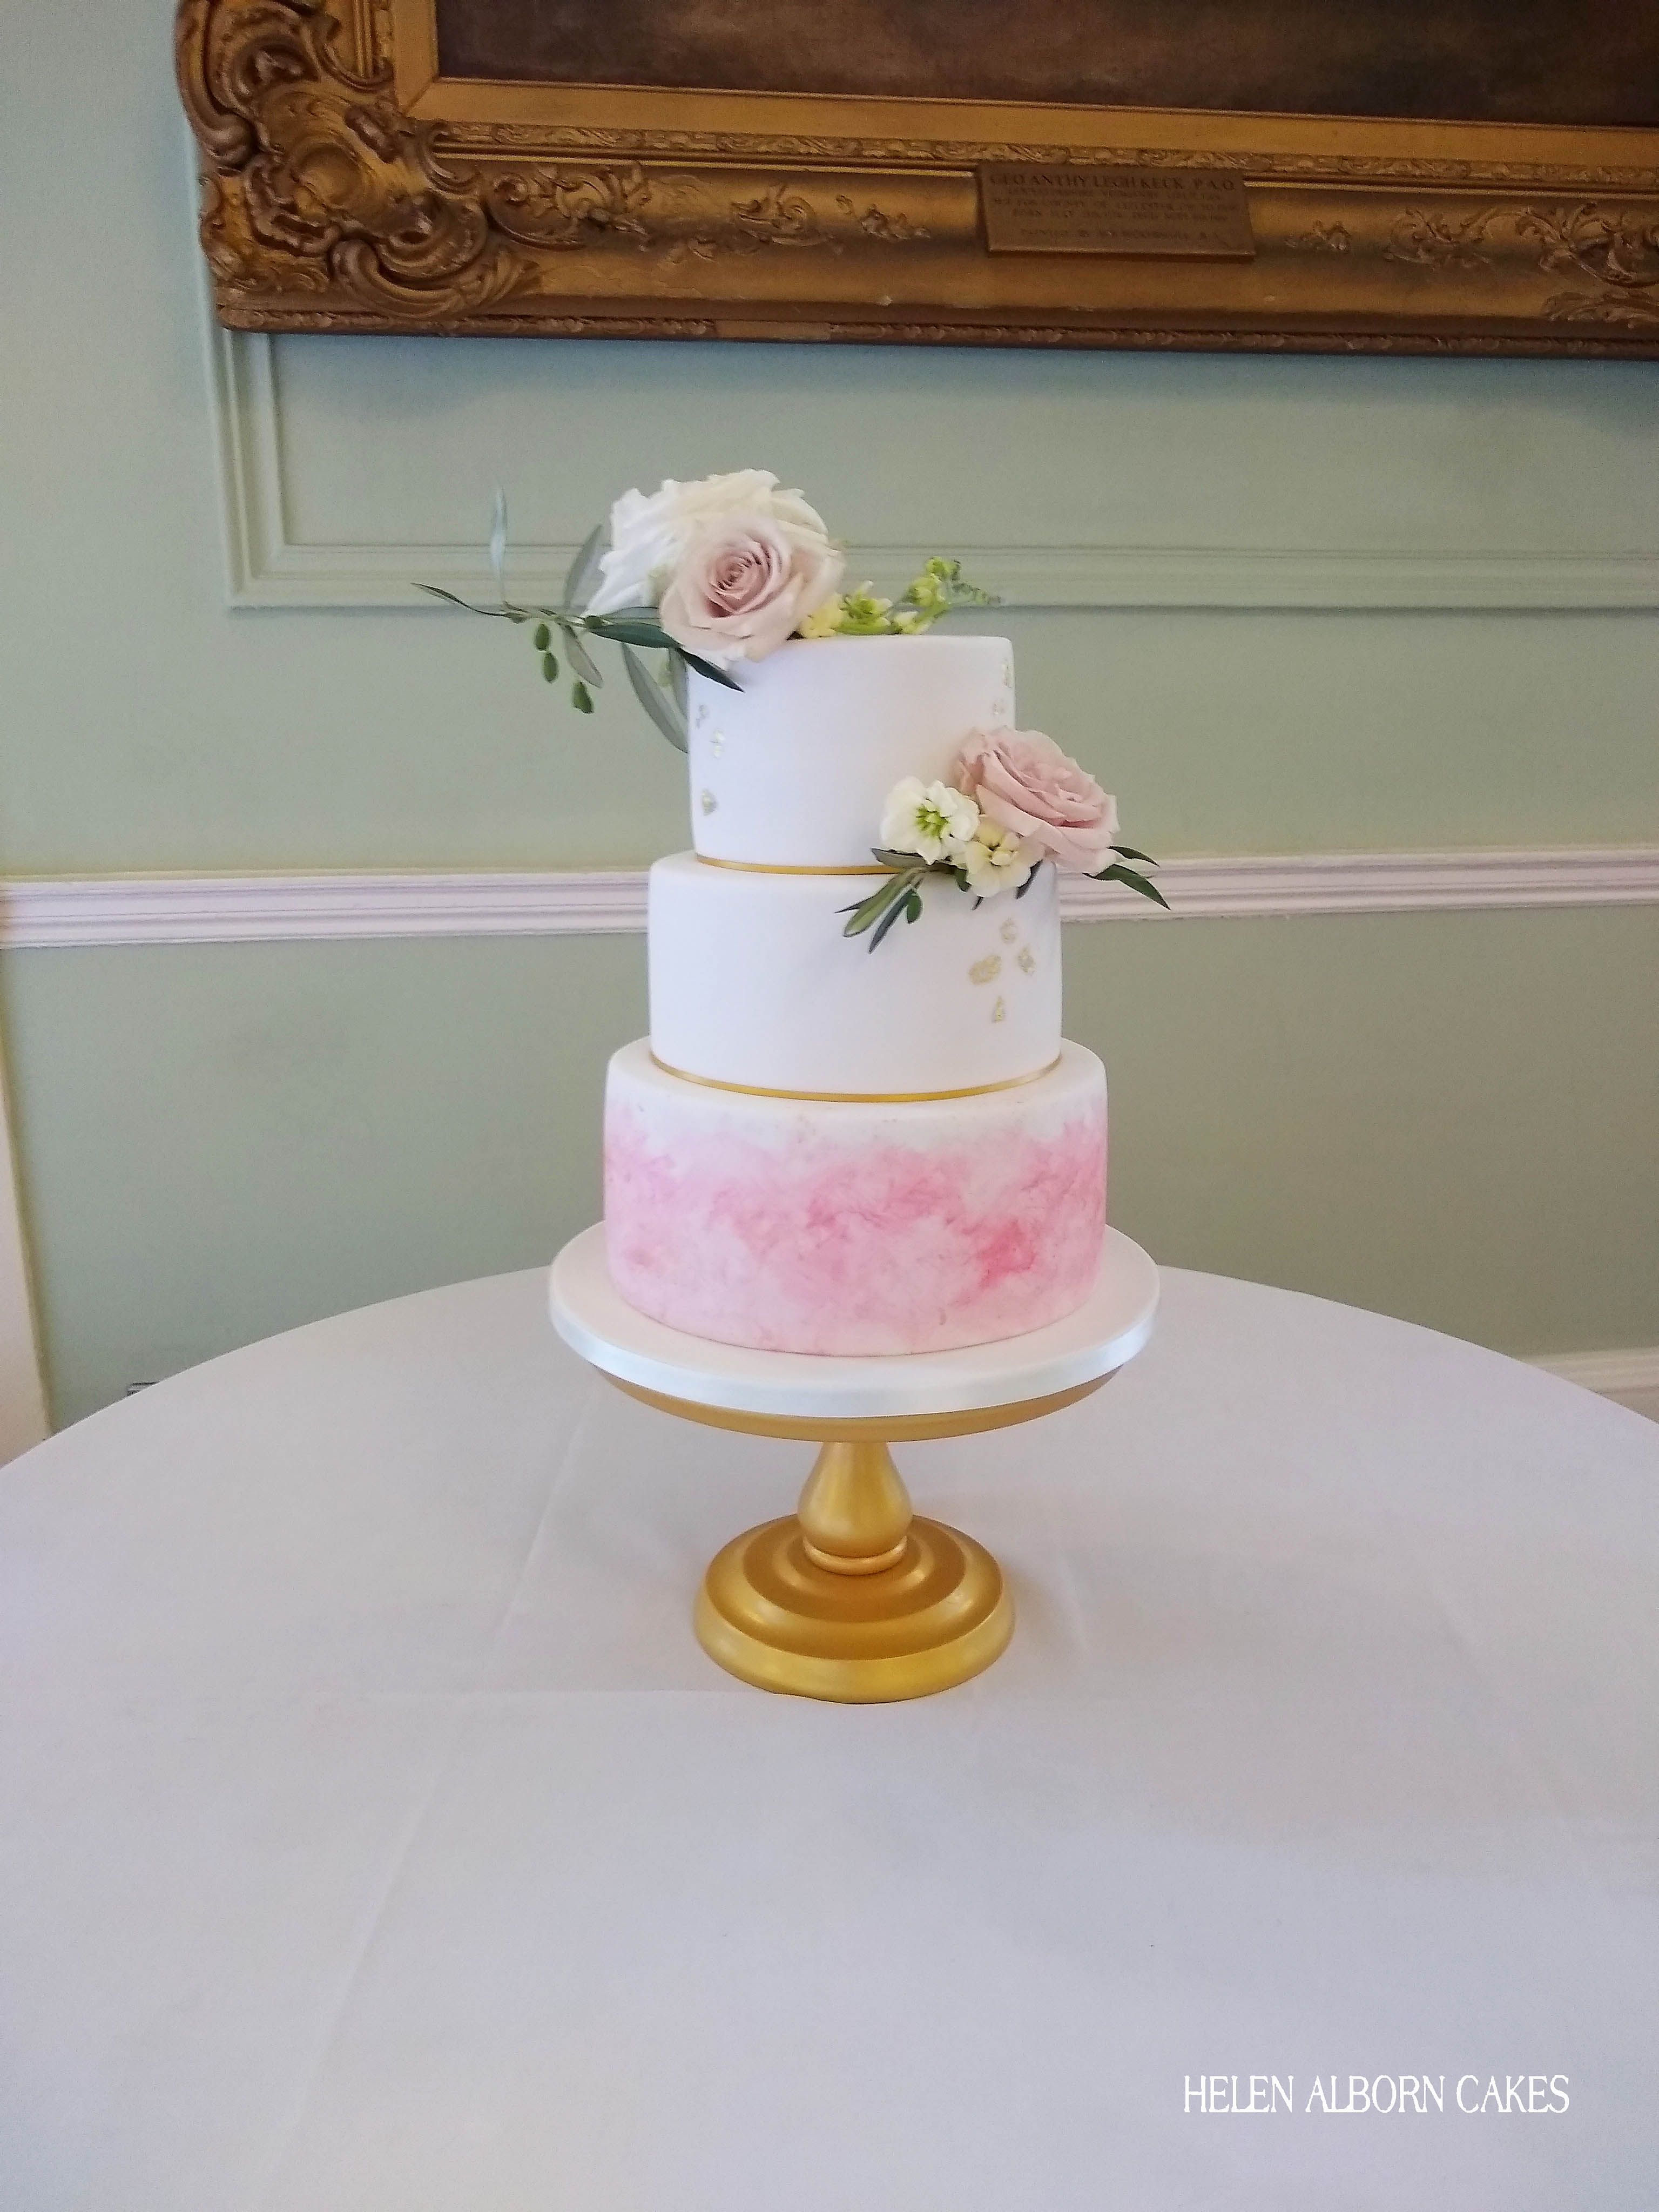 A Three Tiered Iced Wedding Cake With Hand Painted Base Tier Edible